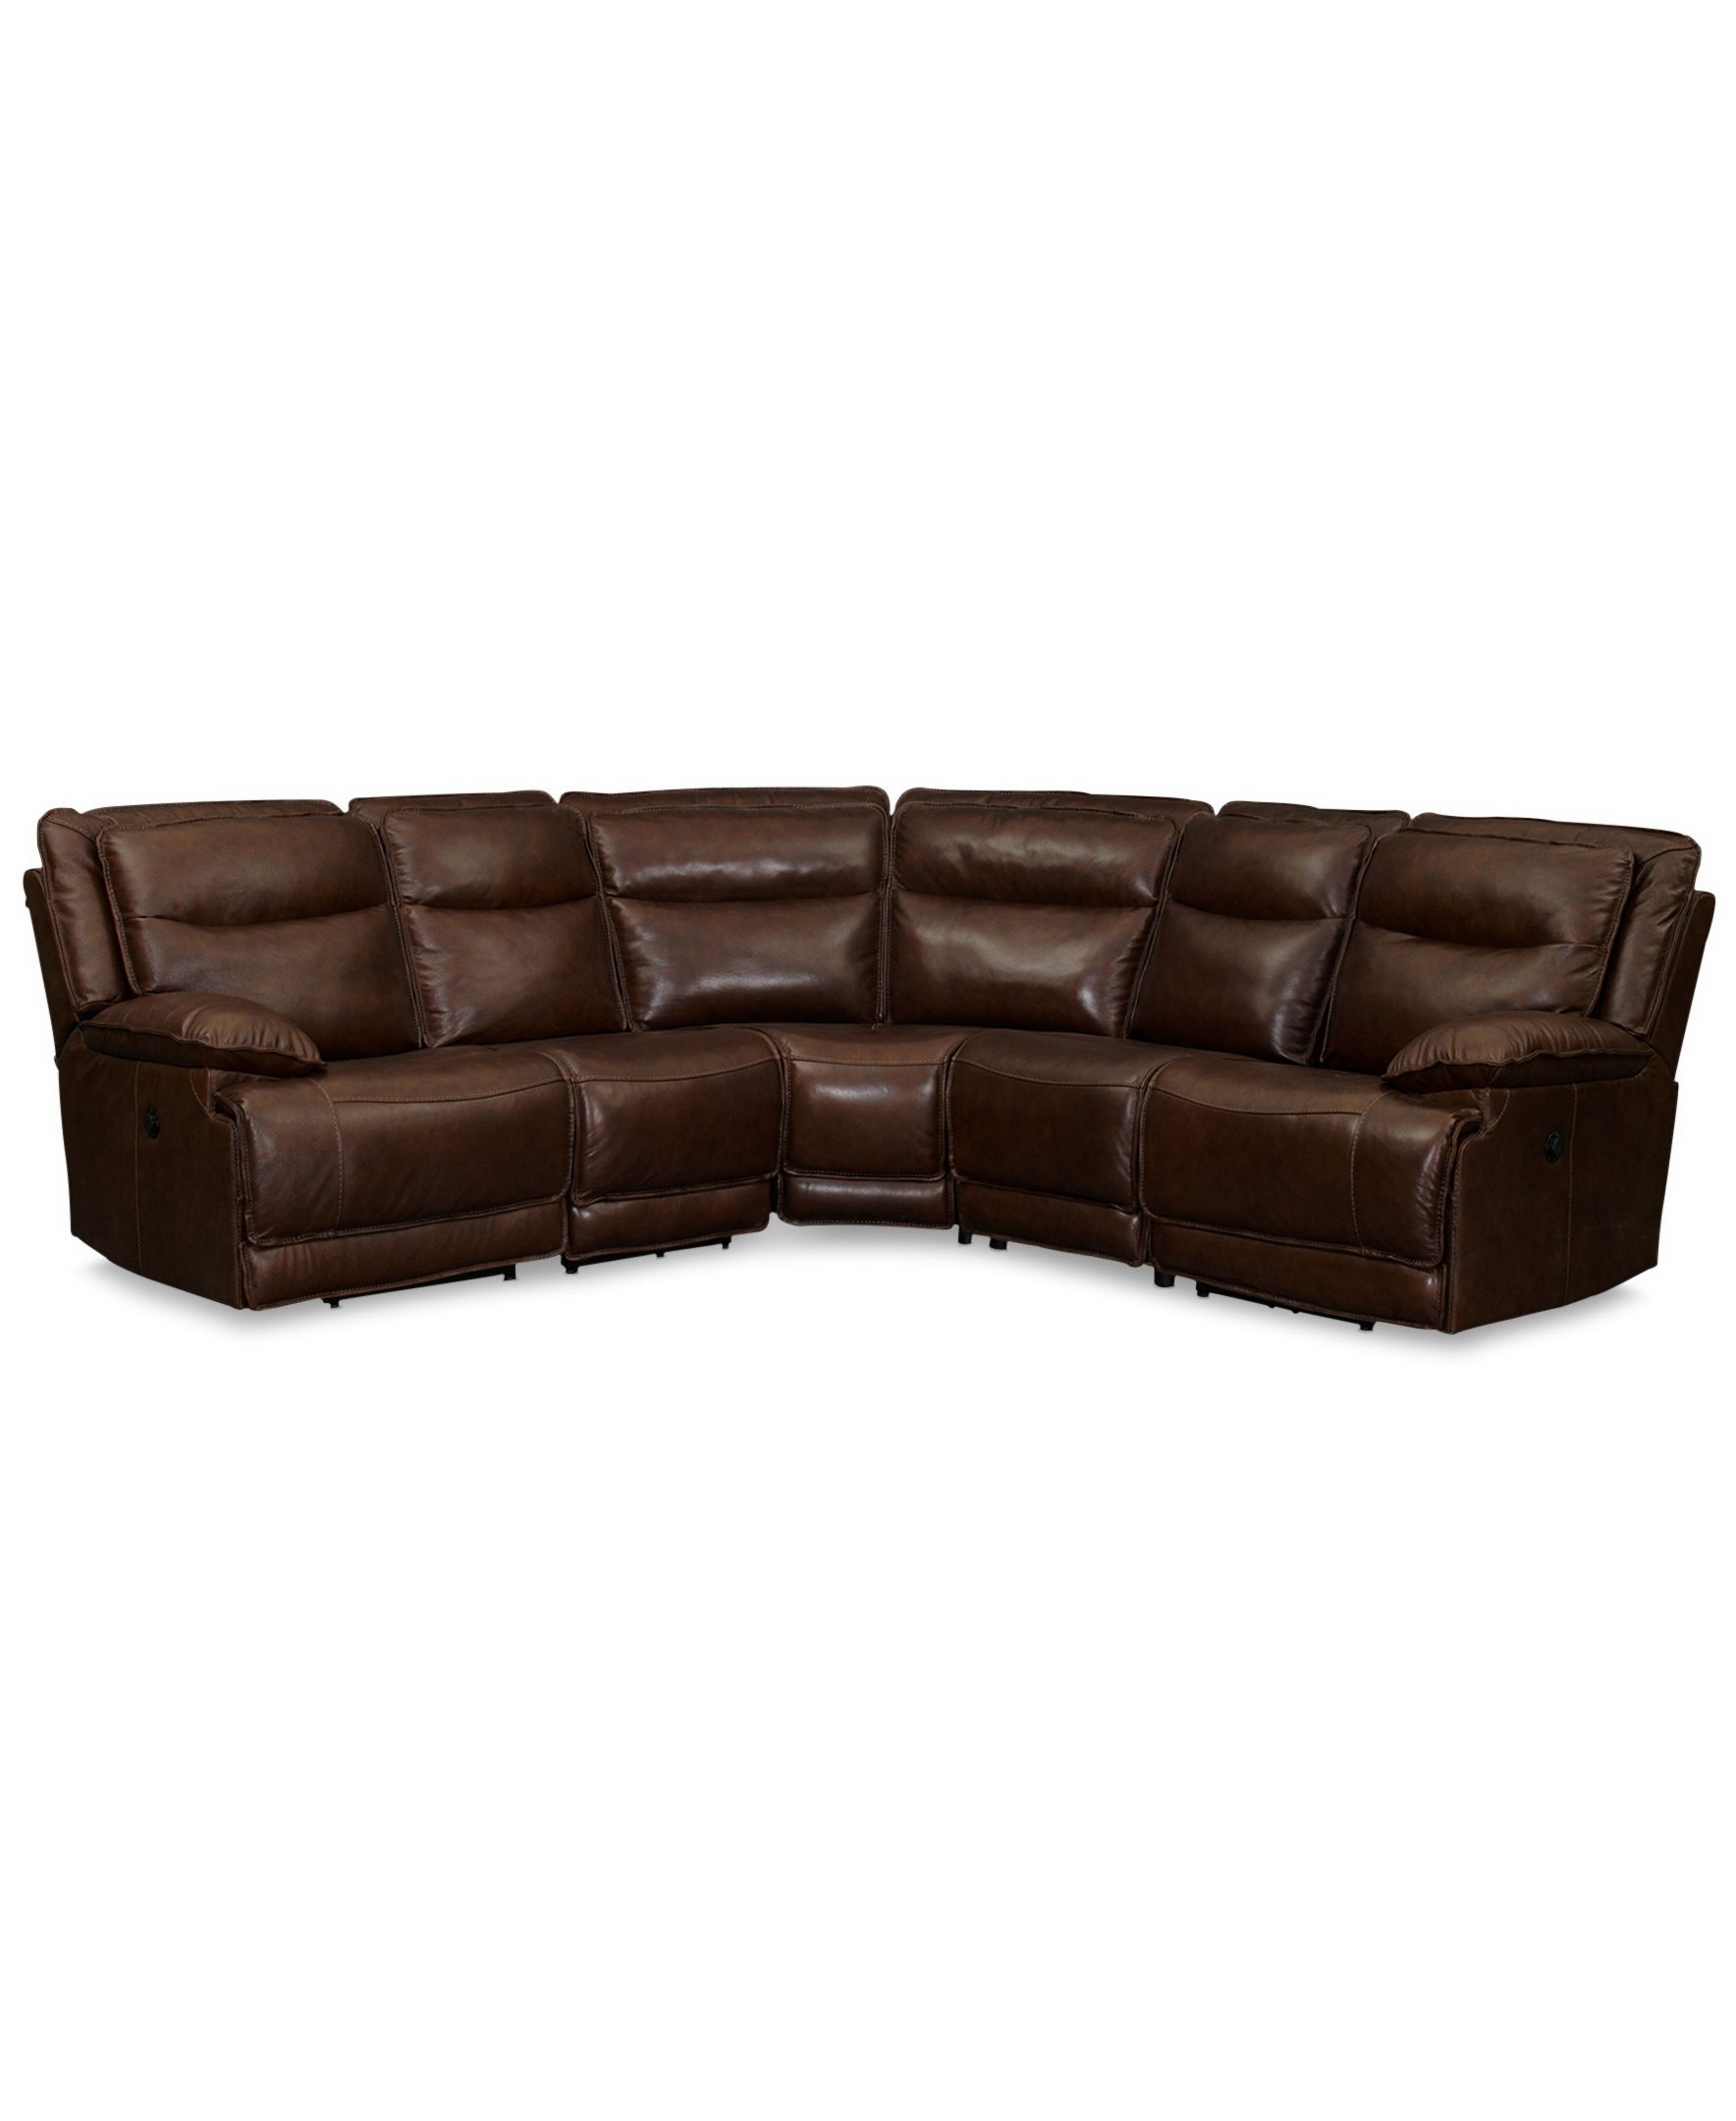 Astounding Joffrey Leather 5 Piece Sectional Sofa With 3 Power Gmtry Best Dining Table And Chair Ideas Images Gmtryco